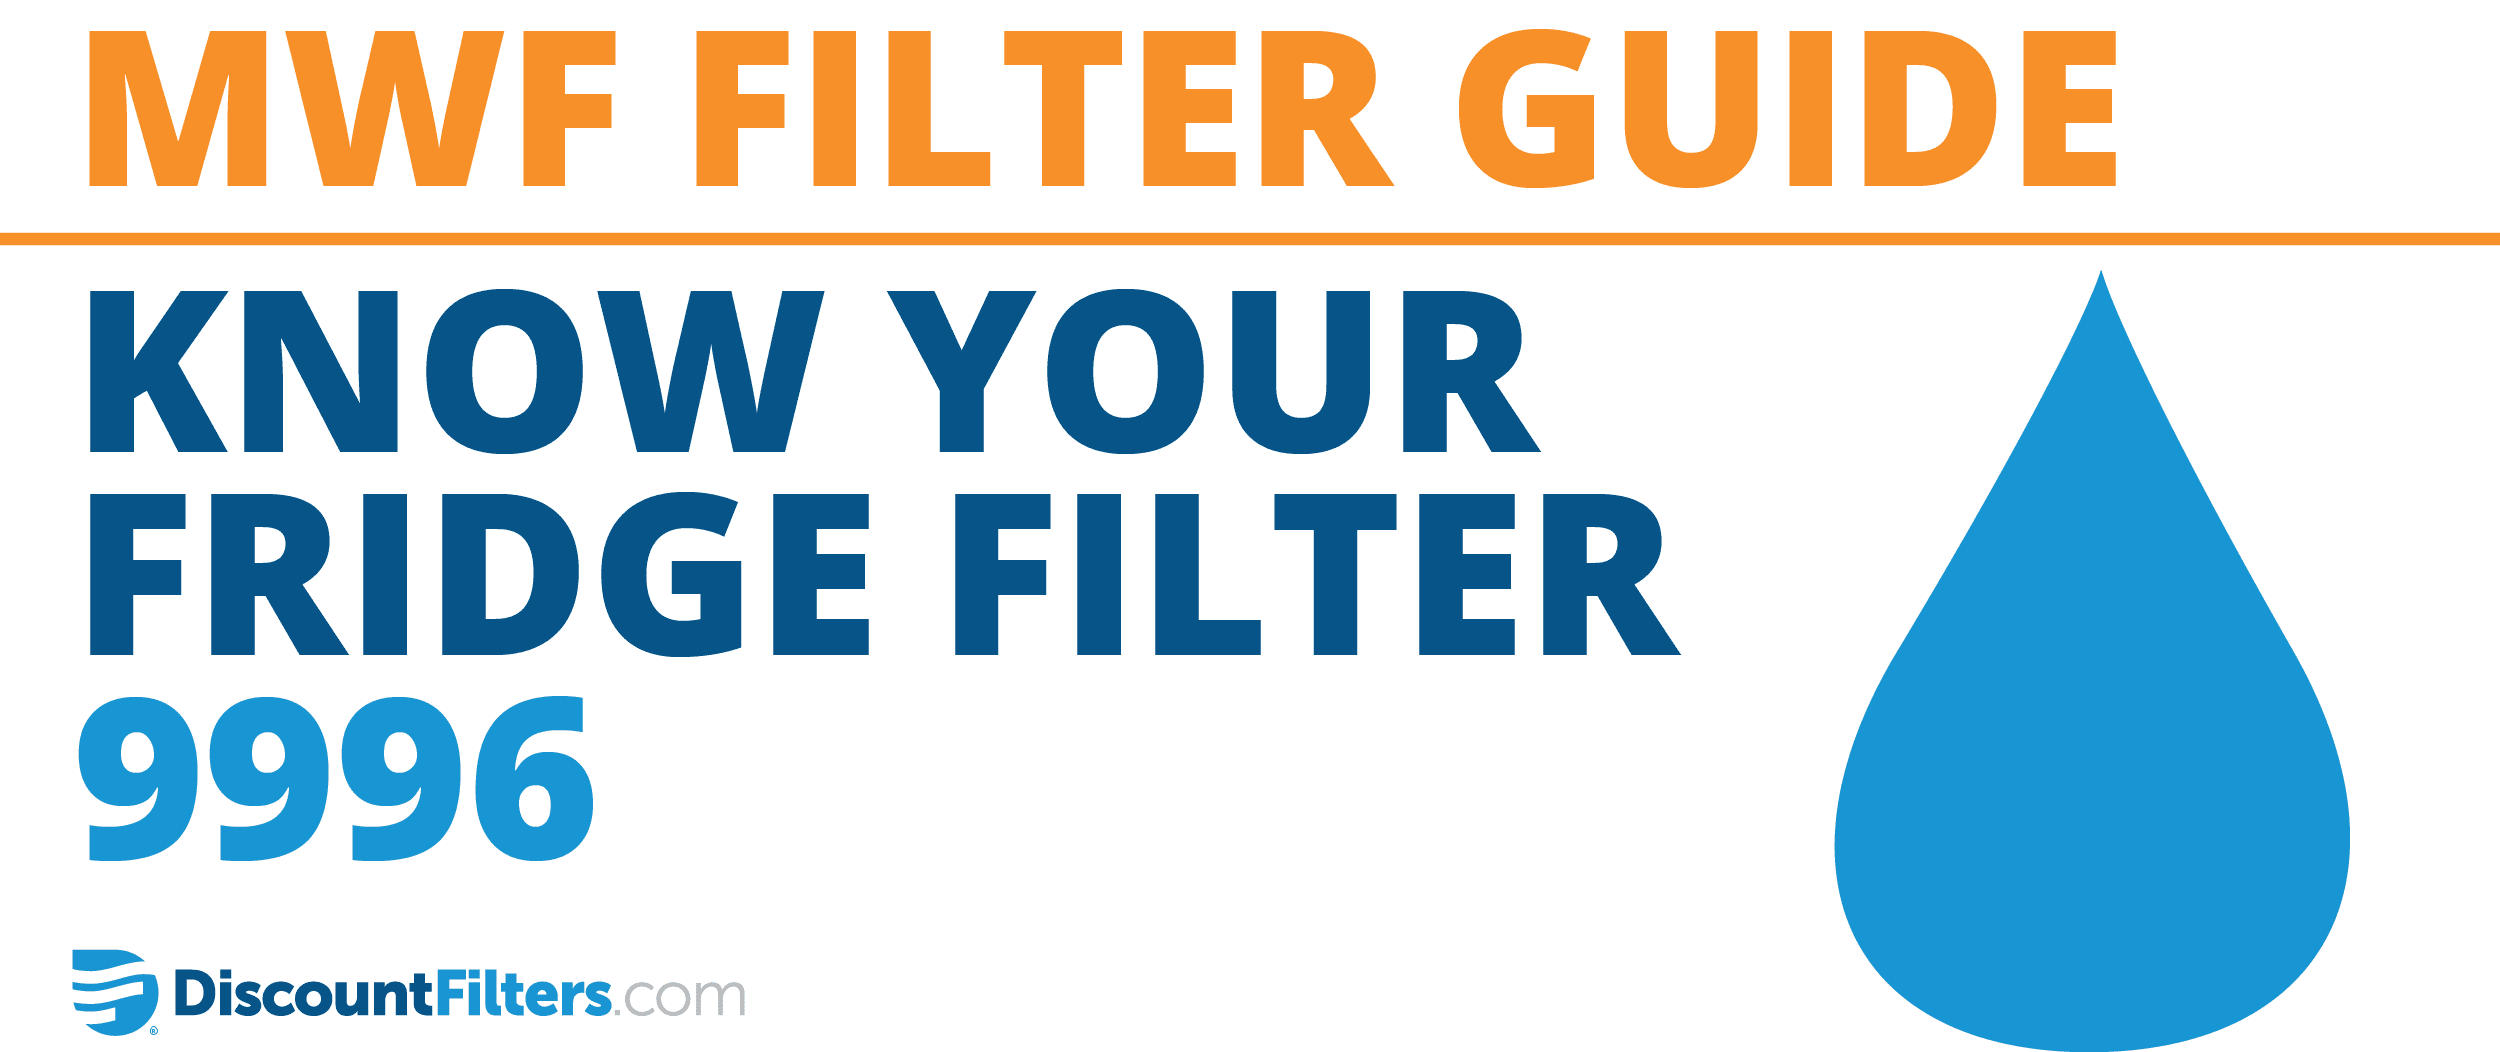 mwf filter guide: 9996